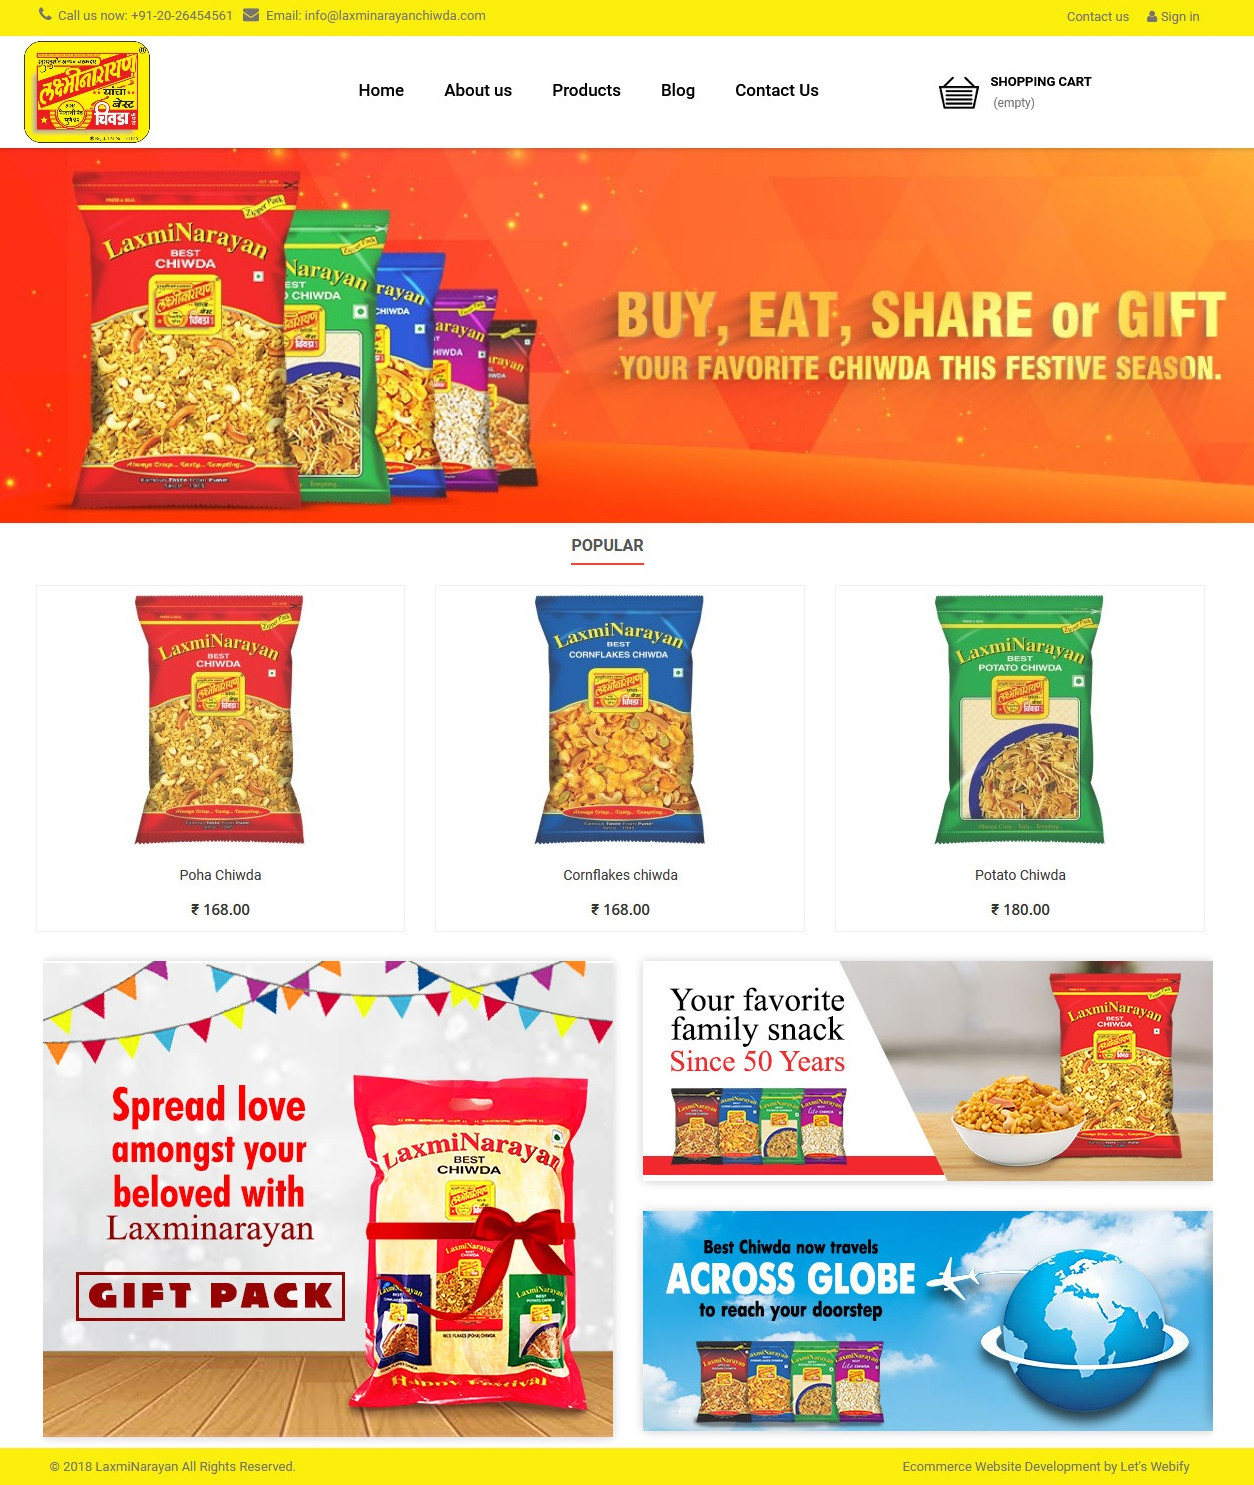 LaxmiNarayan Chiwda Ecommerce Website Homepage